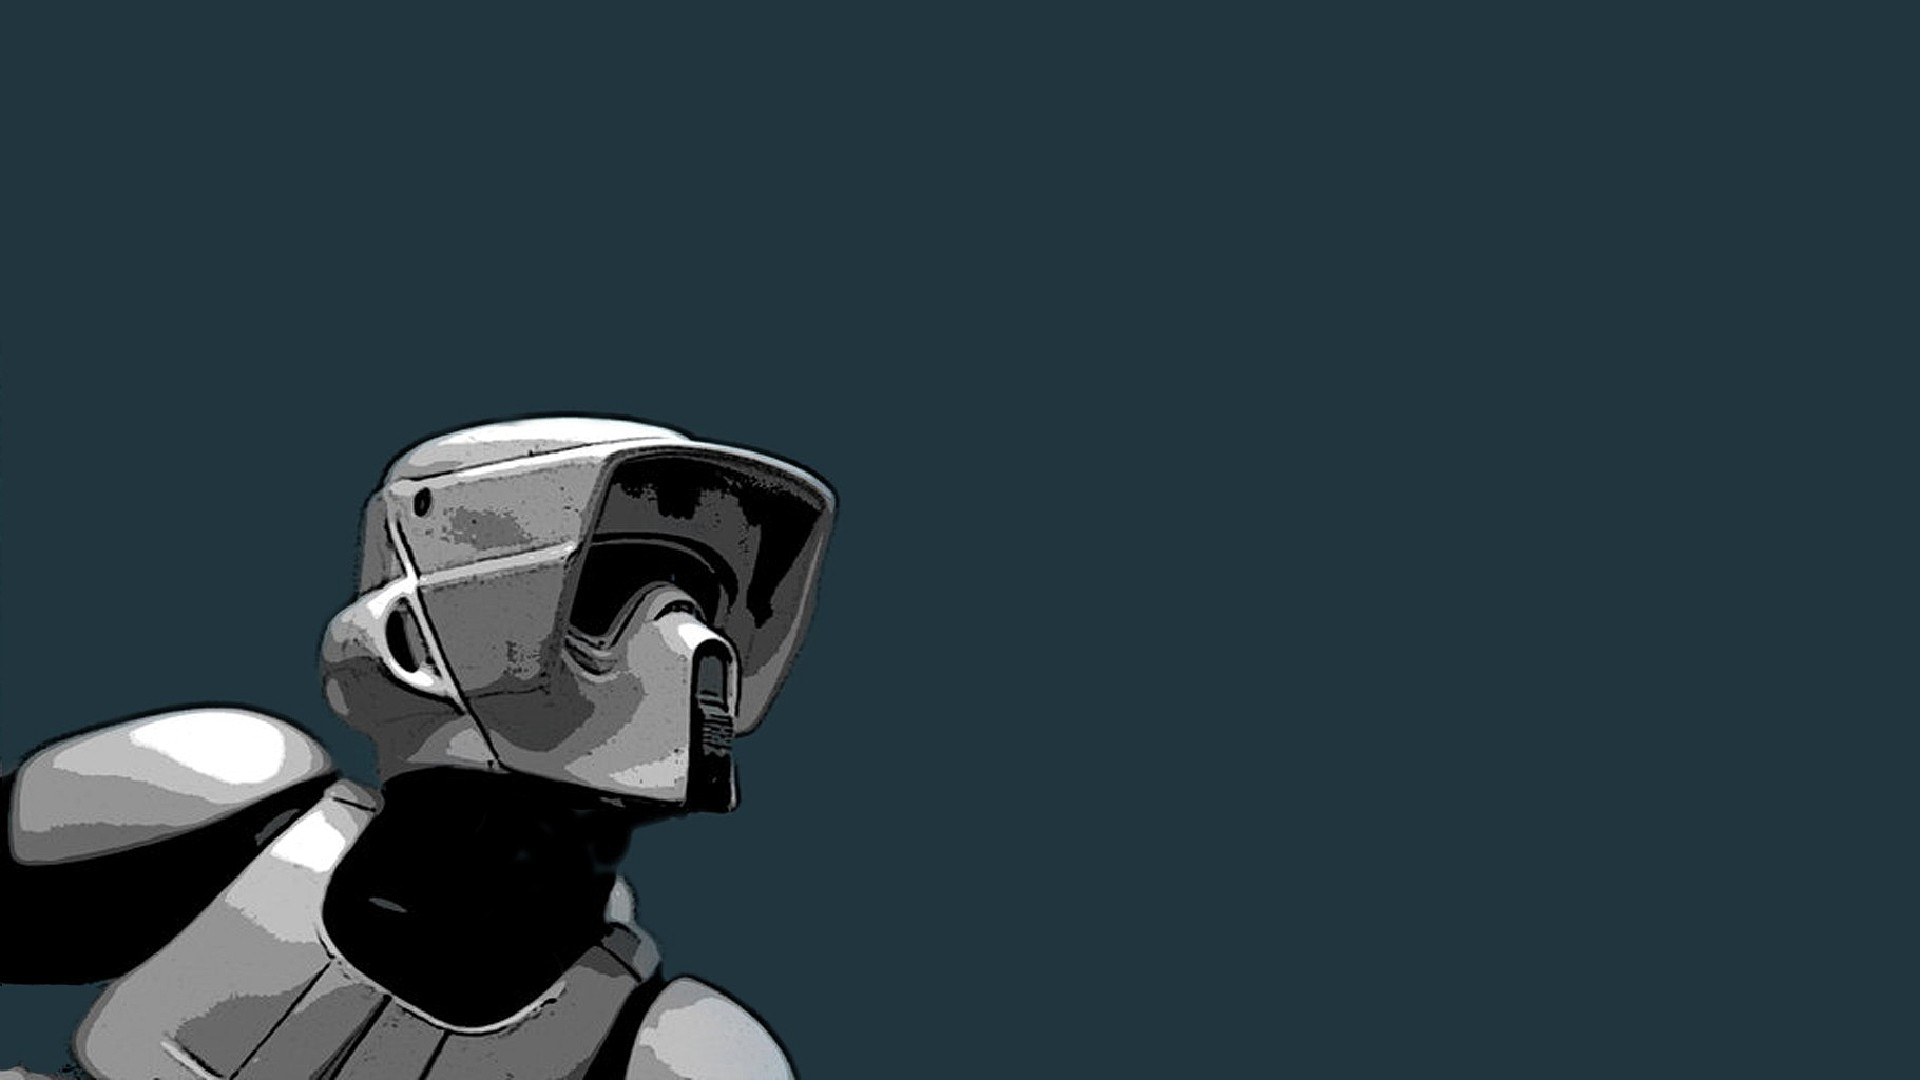 Star Wars Wallpaper 1920x1080 Star Wars Minimalistic Artwork Scout 1920x1080